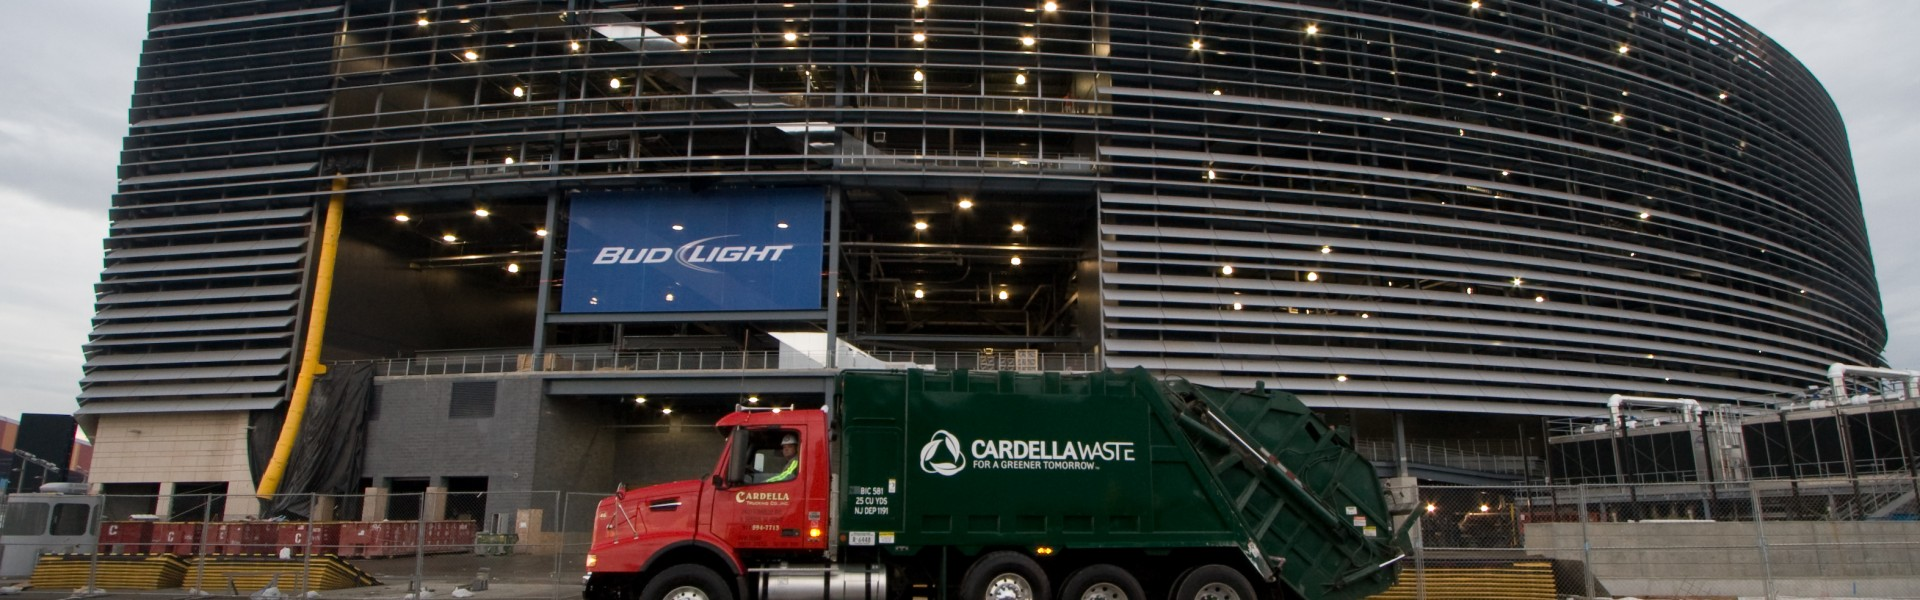 Construction Waste Management Services